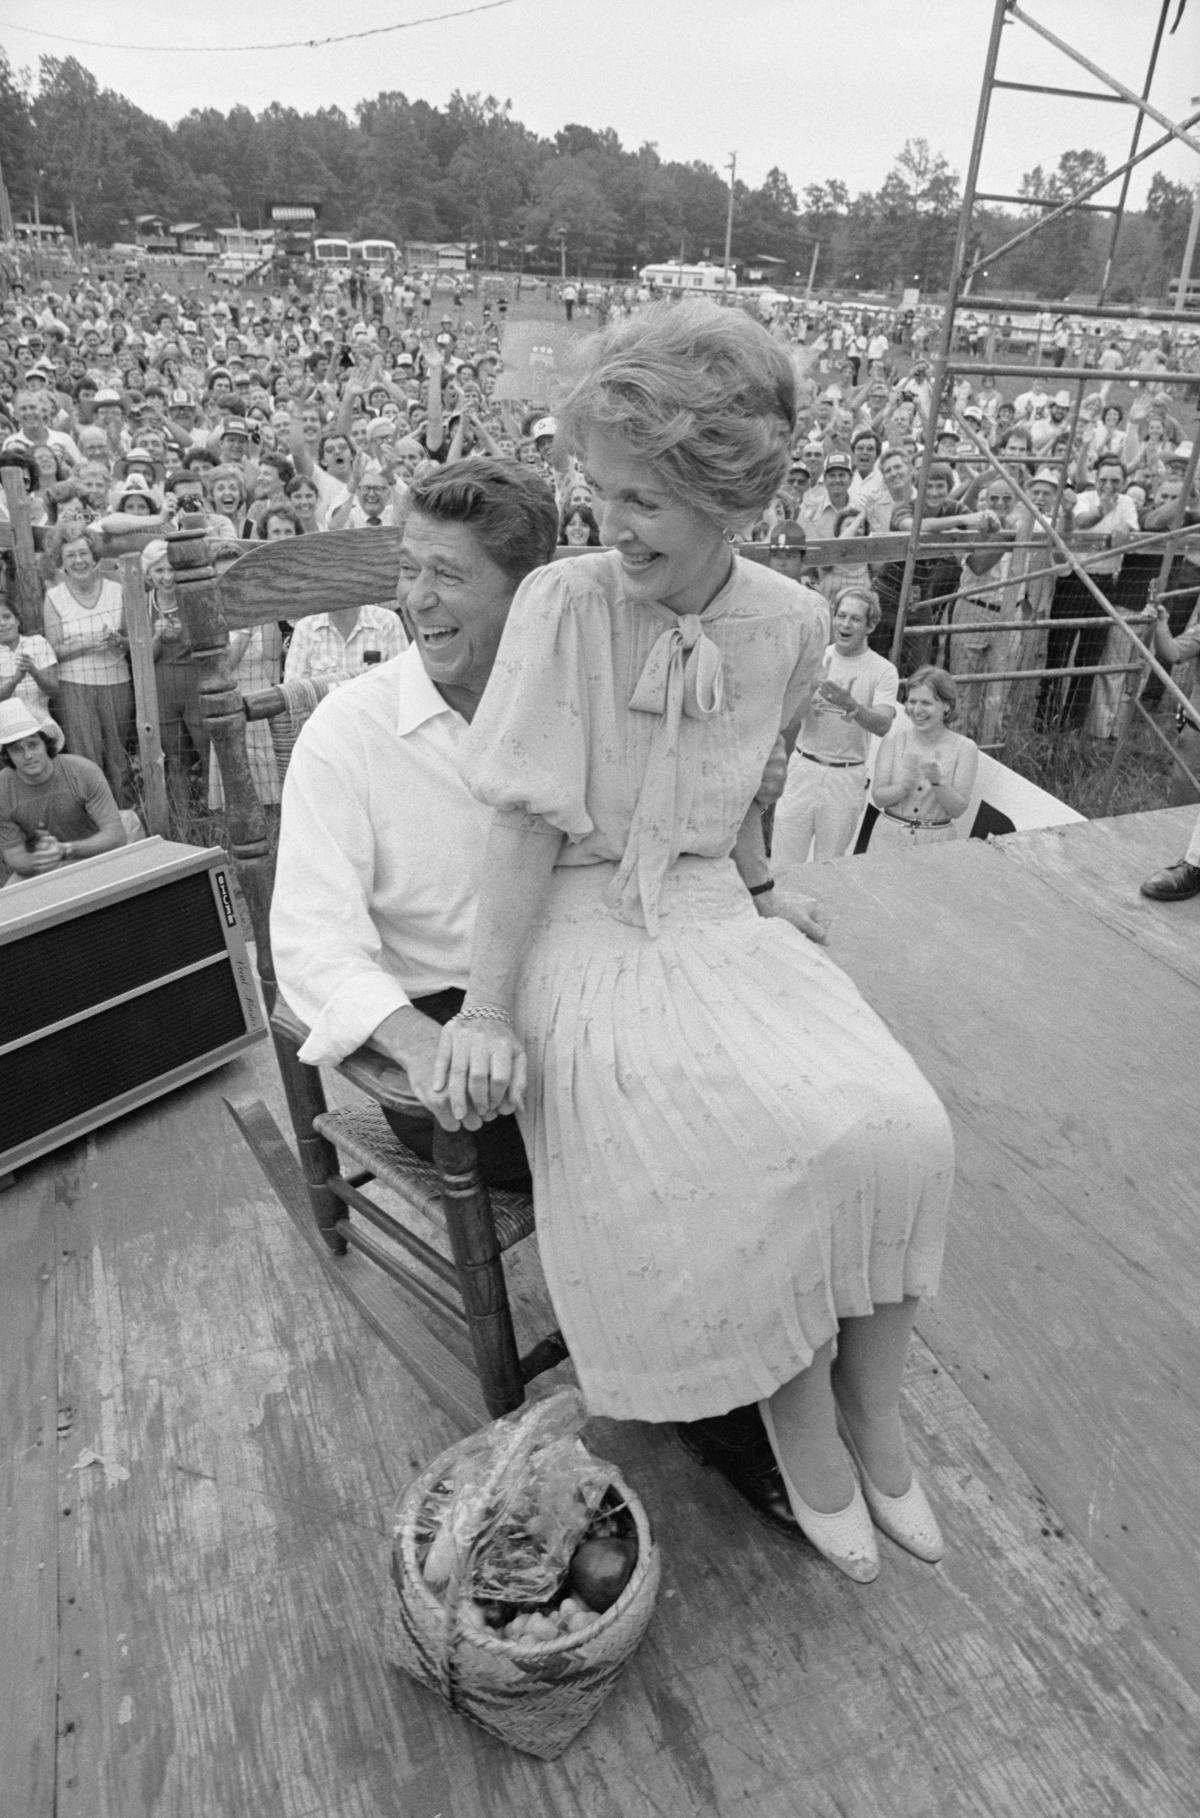 Republican presidential nominee Ronald Reagan and wife Nancy share a rocking chair presented to them during their visit to the Neshoba County Fair in Mississippi. The Reagans' visit marked the first time a major party nominee had ever addressed the fair.